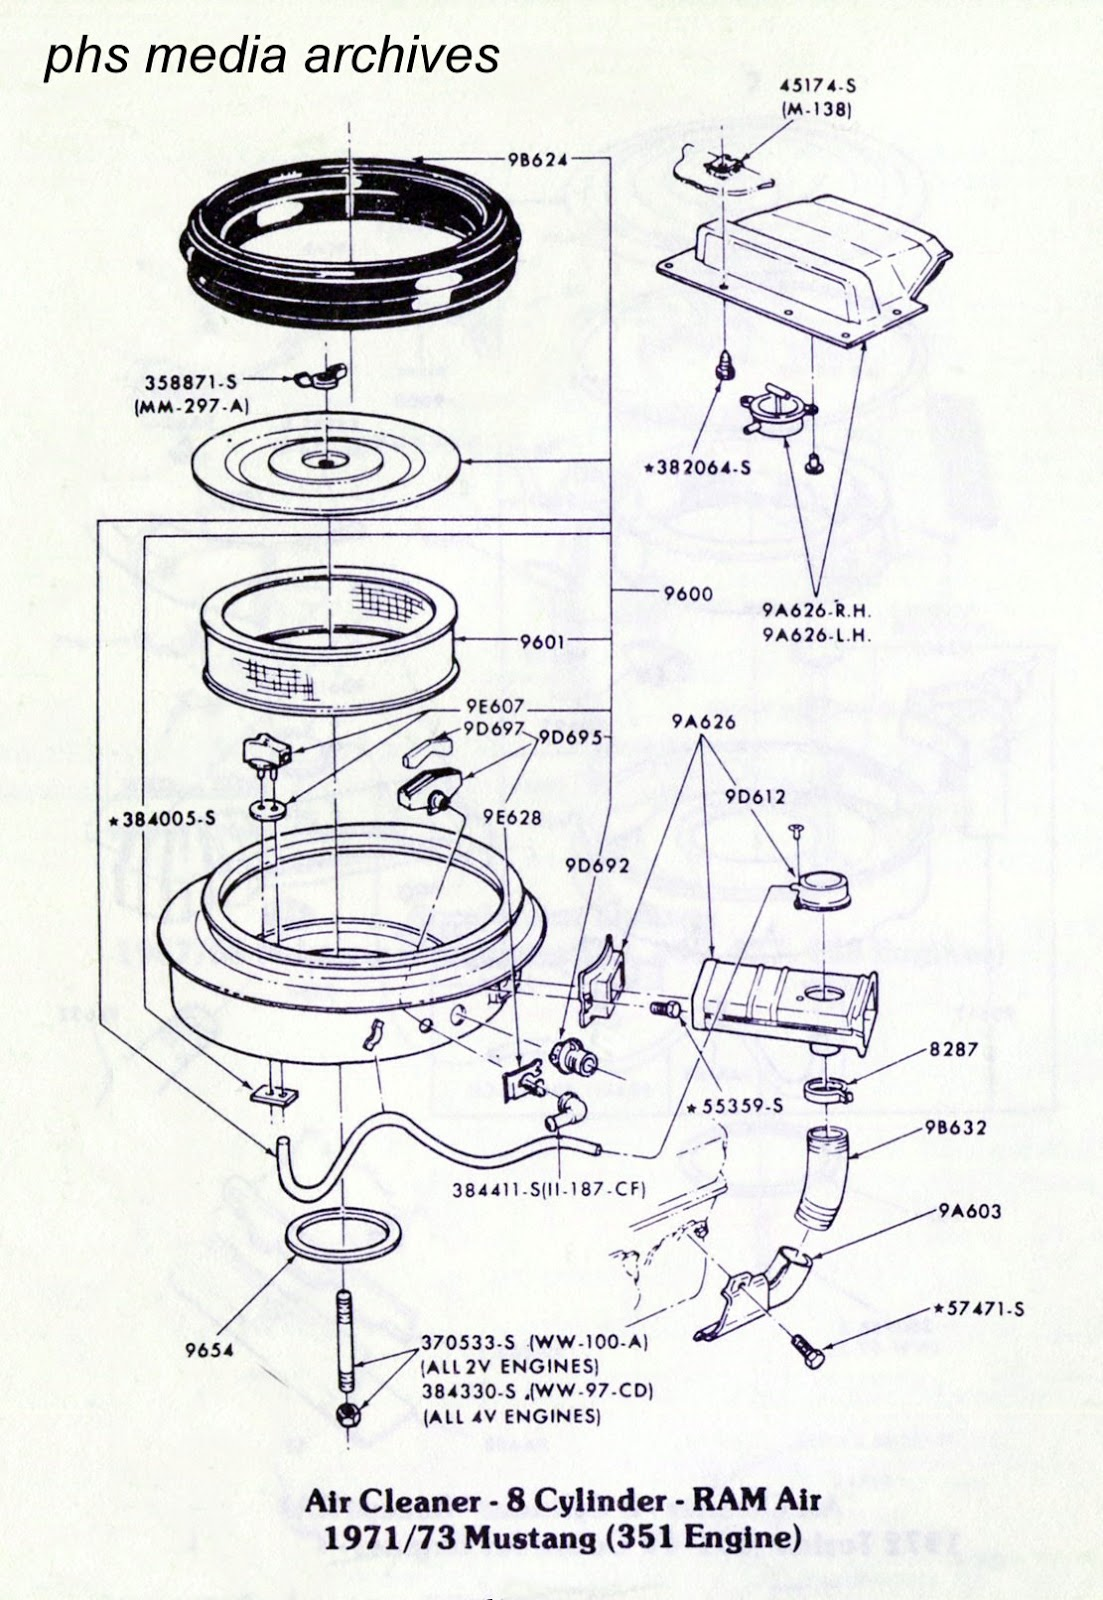 medium resolution of the ram air cleaner system for the 351 4v engine is shown above note that in the drawing there are specific part numbers for certain pieces where